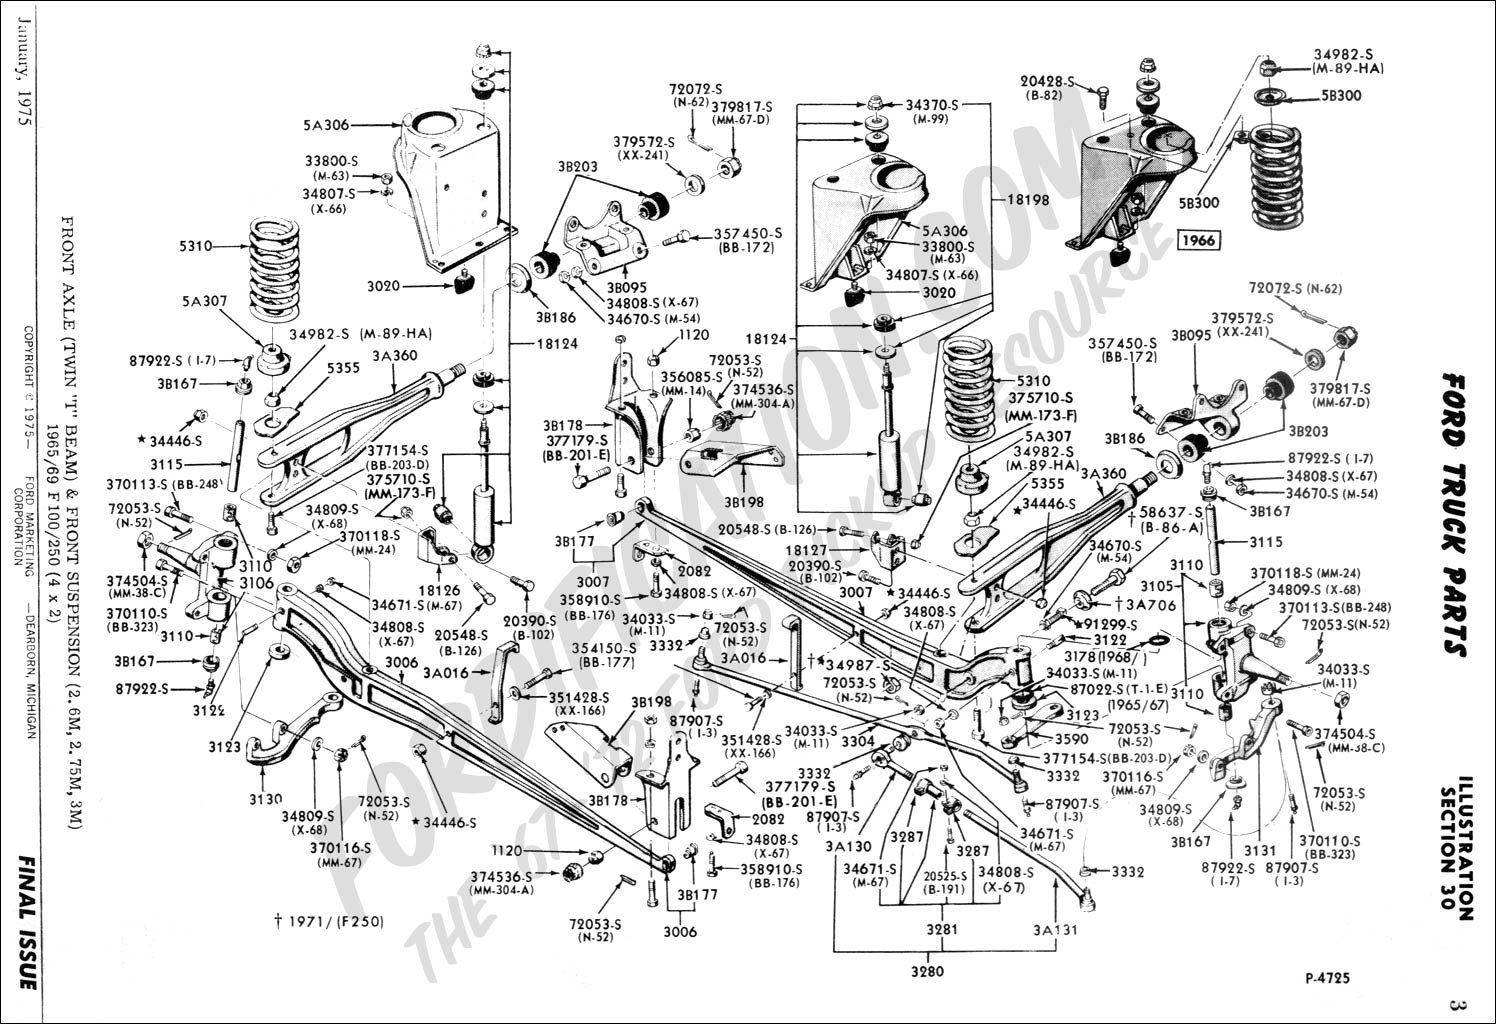 Showthread moreover 2011 Chevy Silverado Headlight Wiring Diagram additionally 1957 Ford Front Suspension Parts Diagram moreover 54 Ford Customline Wiring Diagram additionally Flathead drawings electrical. on 55 chevy fuse box diagram